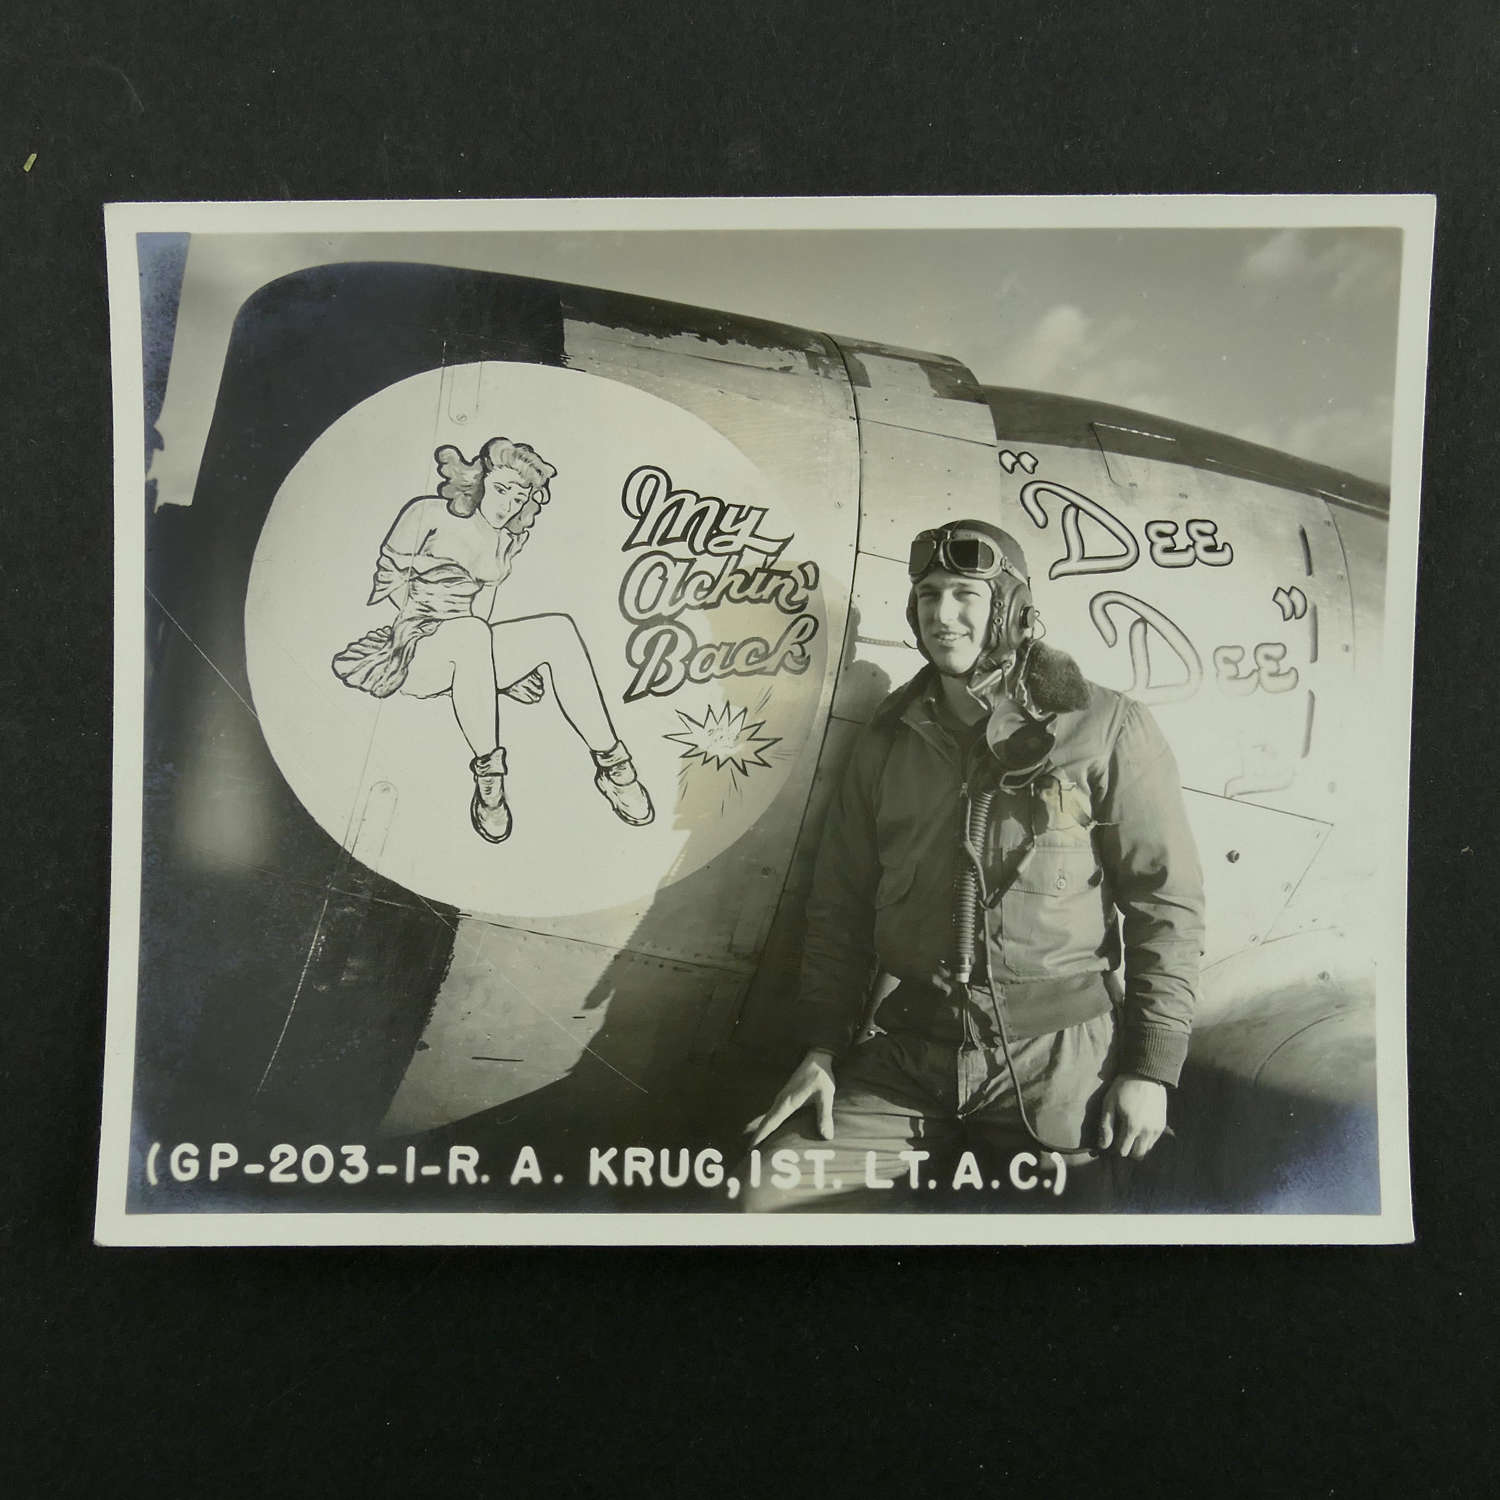 USAAF 9th AAF 366th fighter group nose art photo, 'Dee Dee'